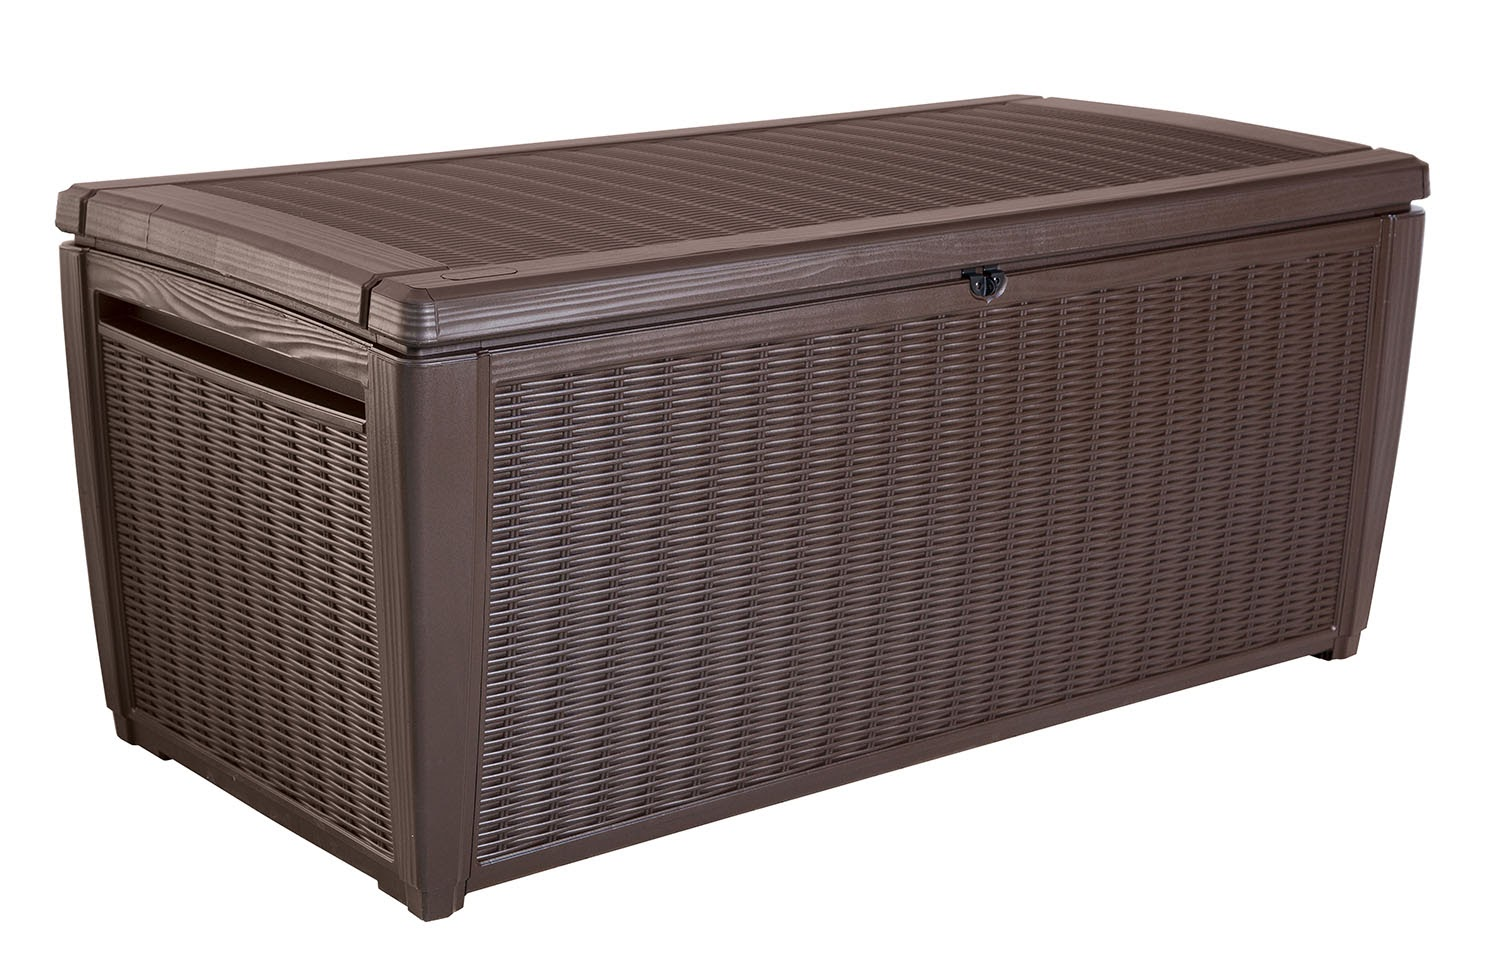 Keter Sumatra 135 Gallon Rattan Style Deck Box by Keter